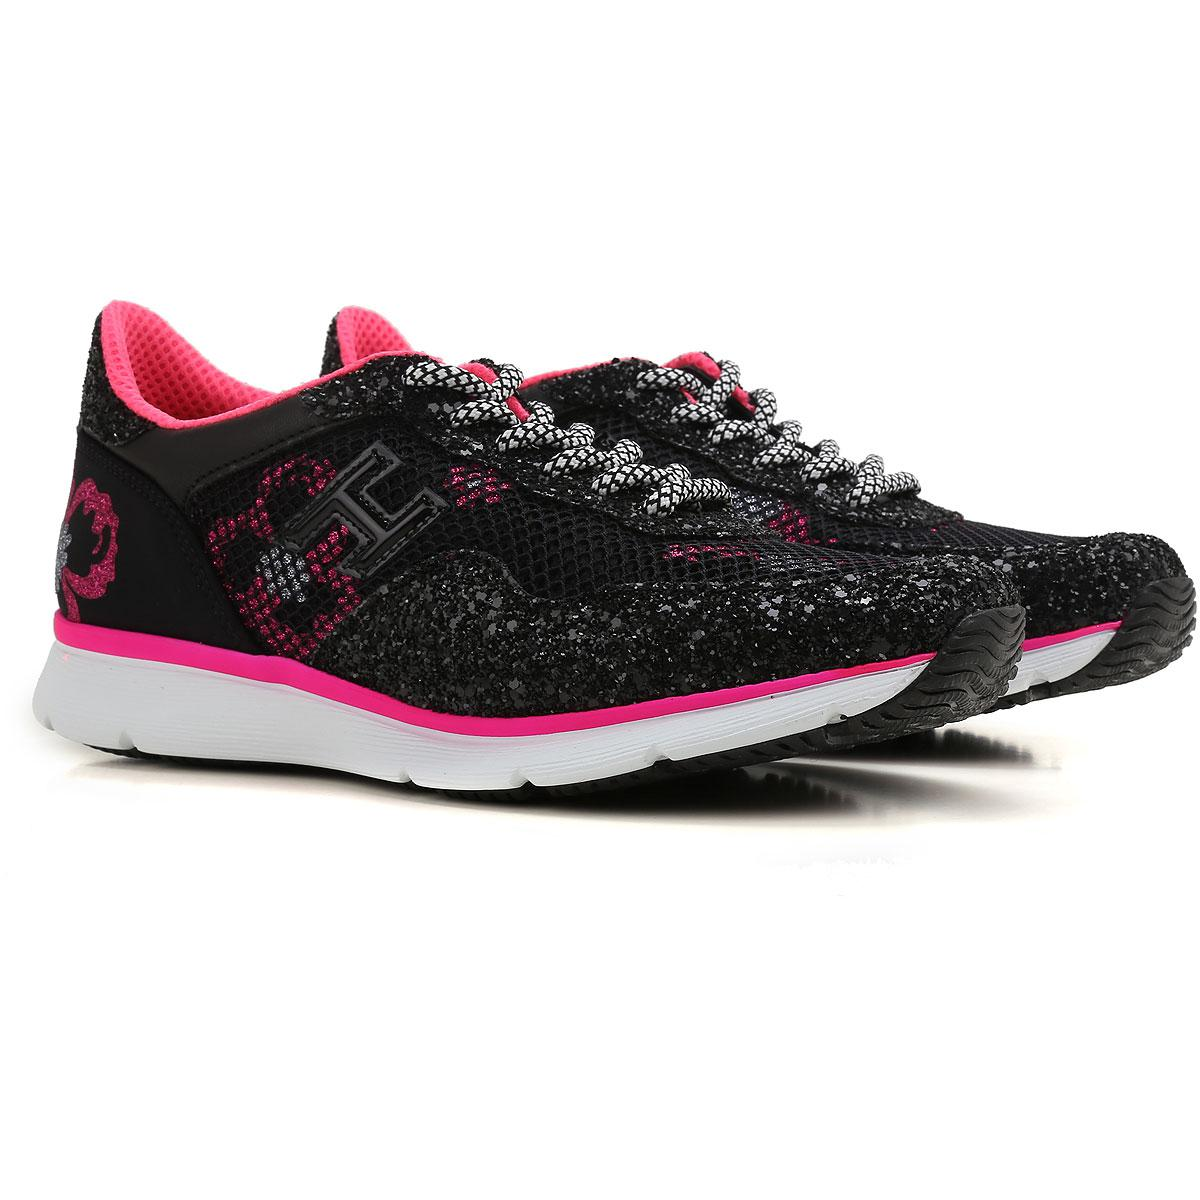 2bd765ae23 Lyst - Hogan Sneakers For Women On Sale In Outlet in Black - Save 17%